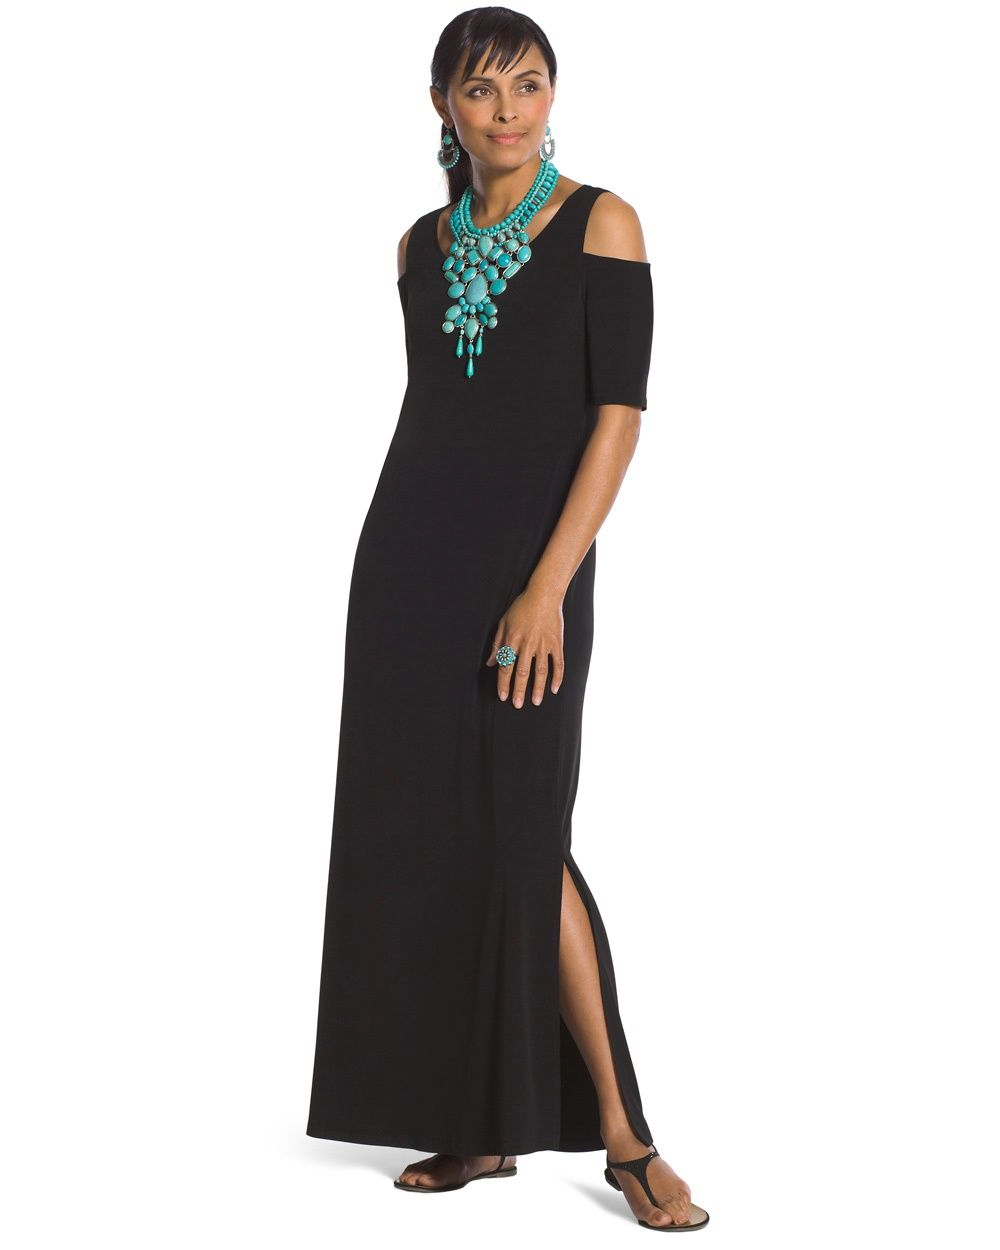 bfe25a1db71 Chico s Women s Cold-Shoulder Maxi Dress